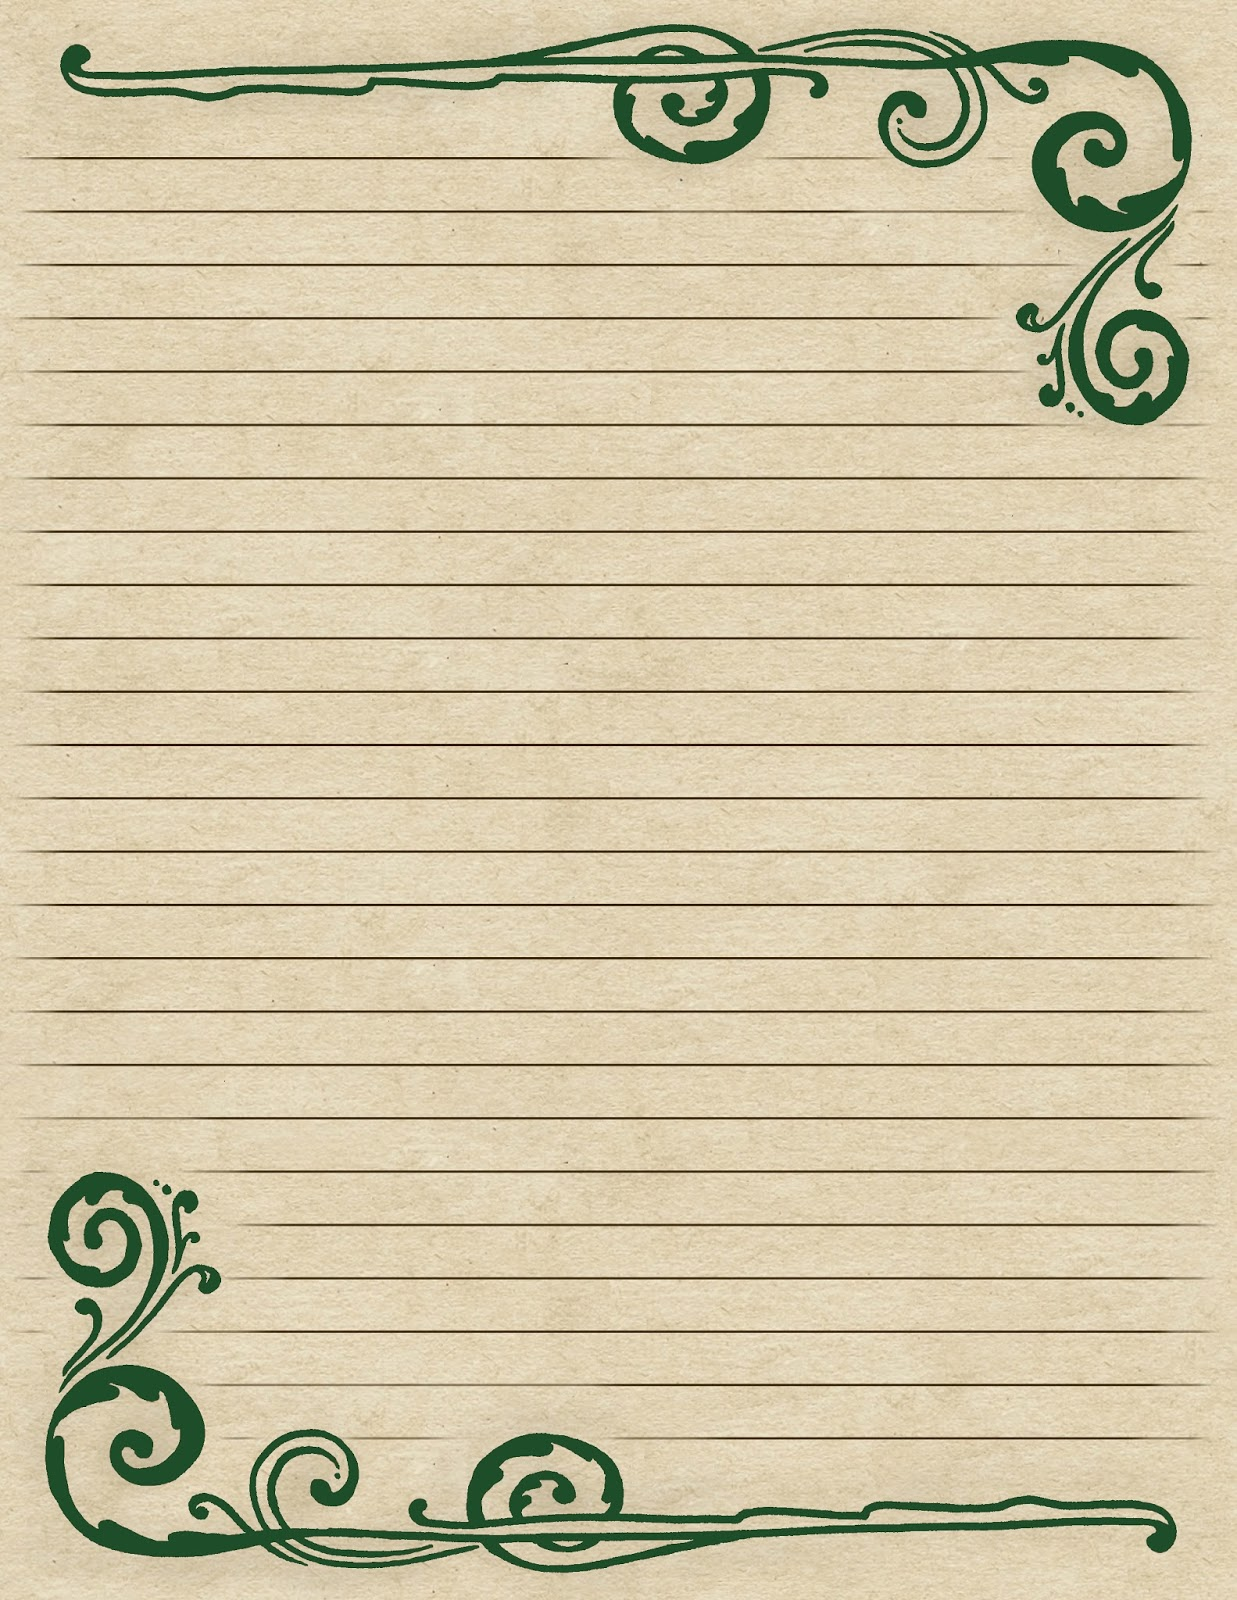 Decorative Writing Paper